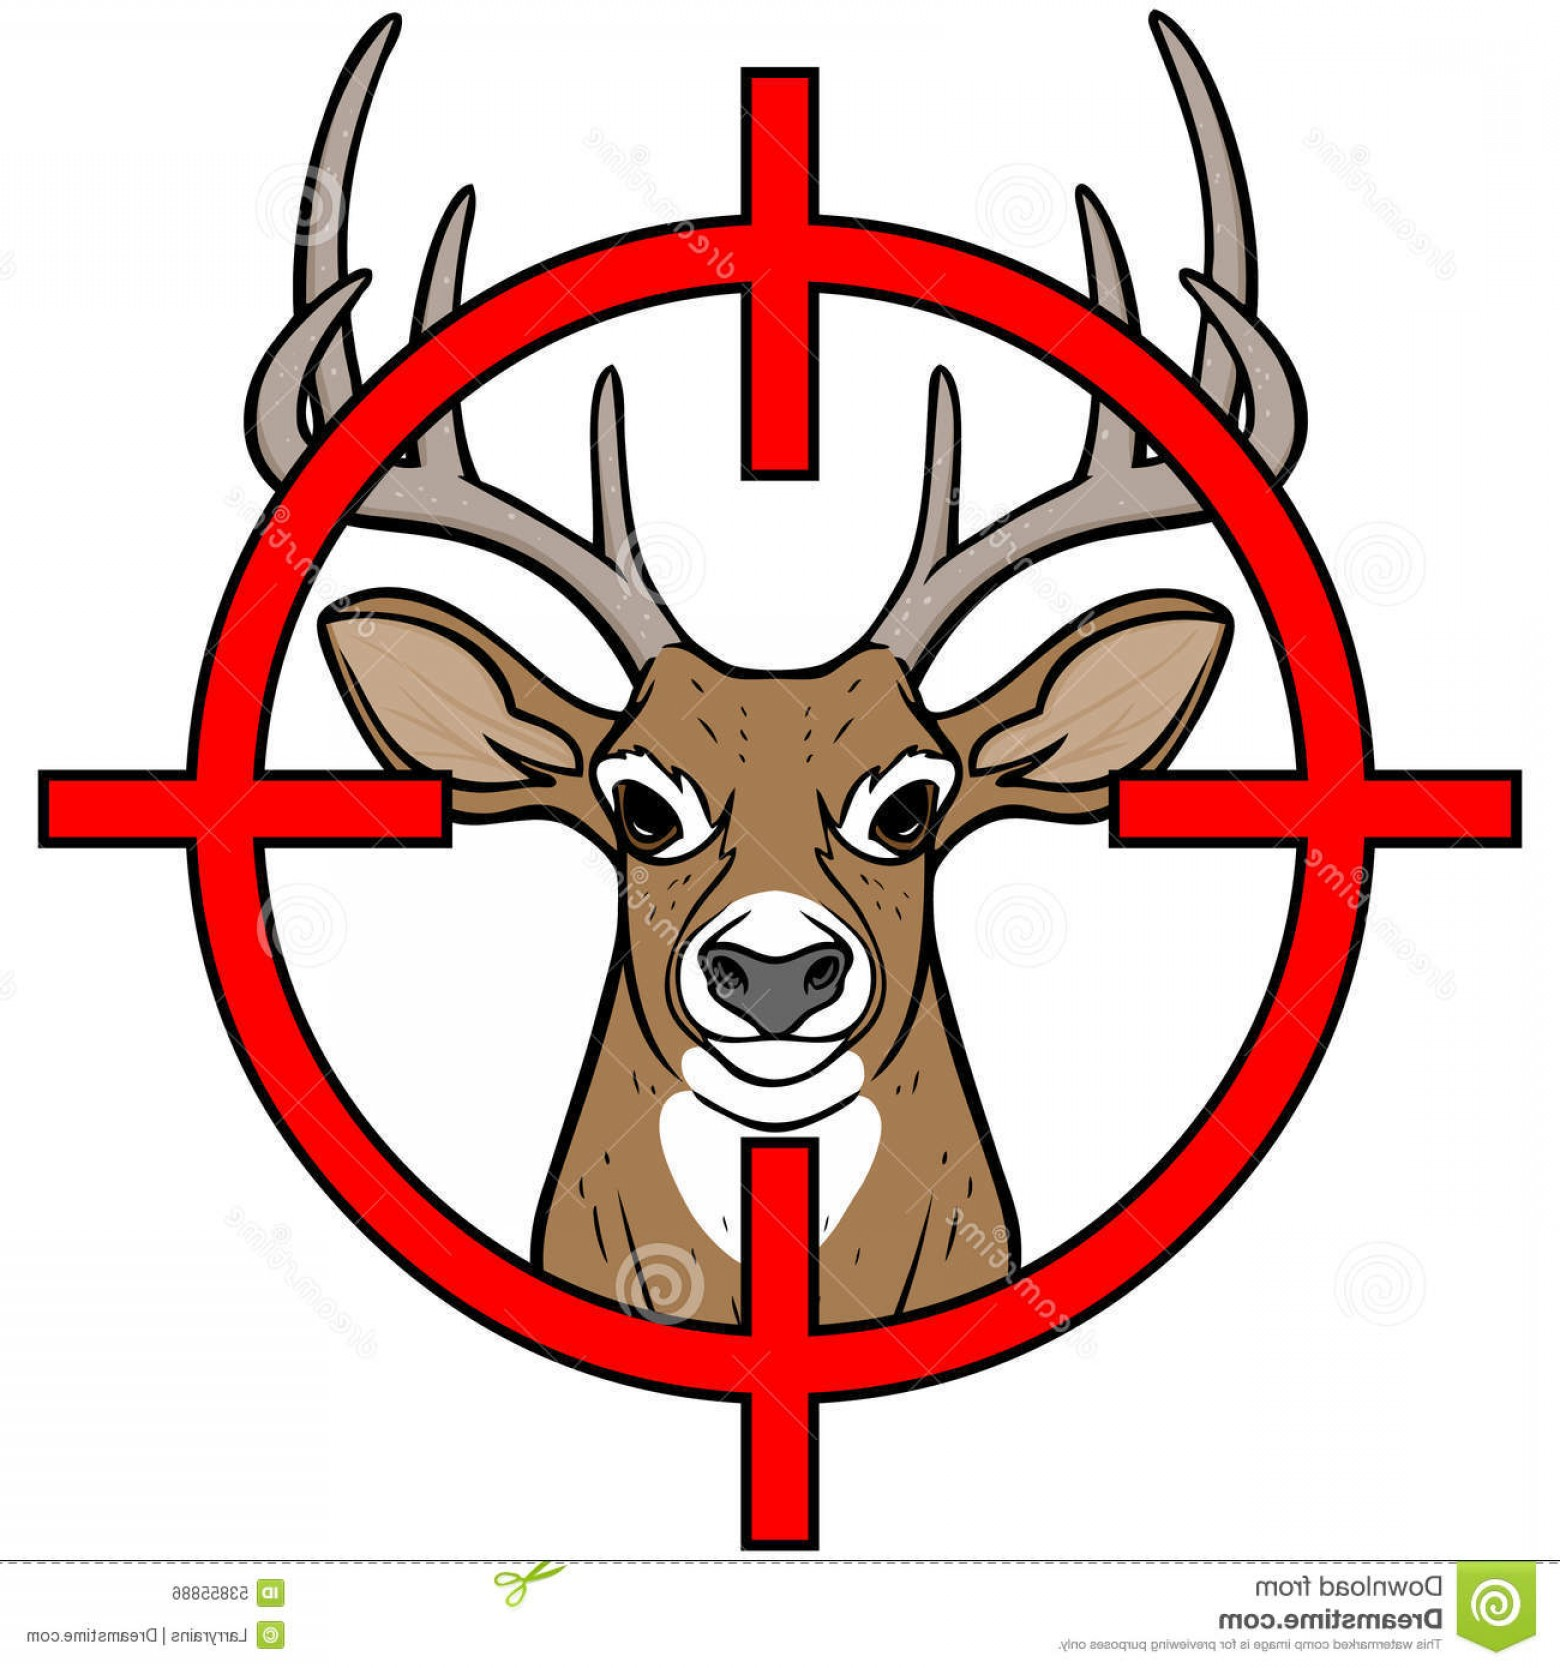 Vector Clip Art Hunting: Stock Illustration Deer Hunting Vector Illustration Insignia Image